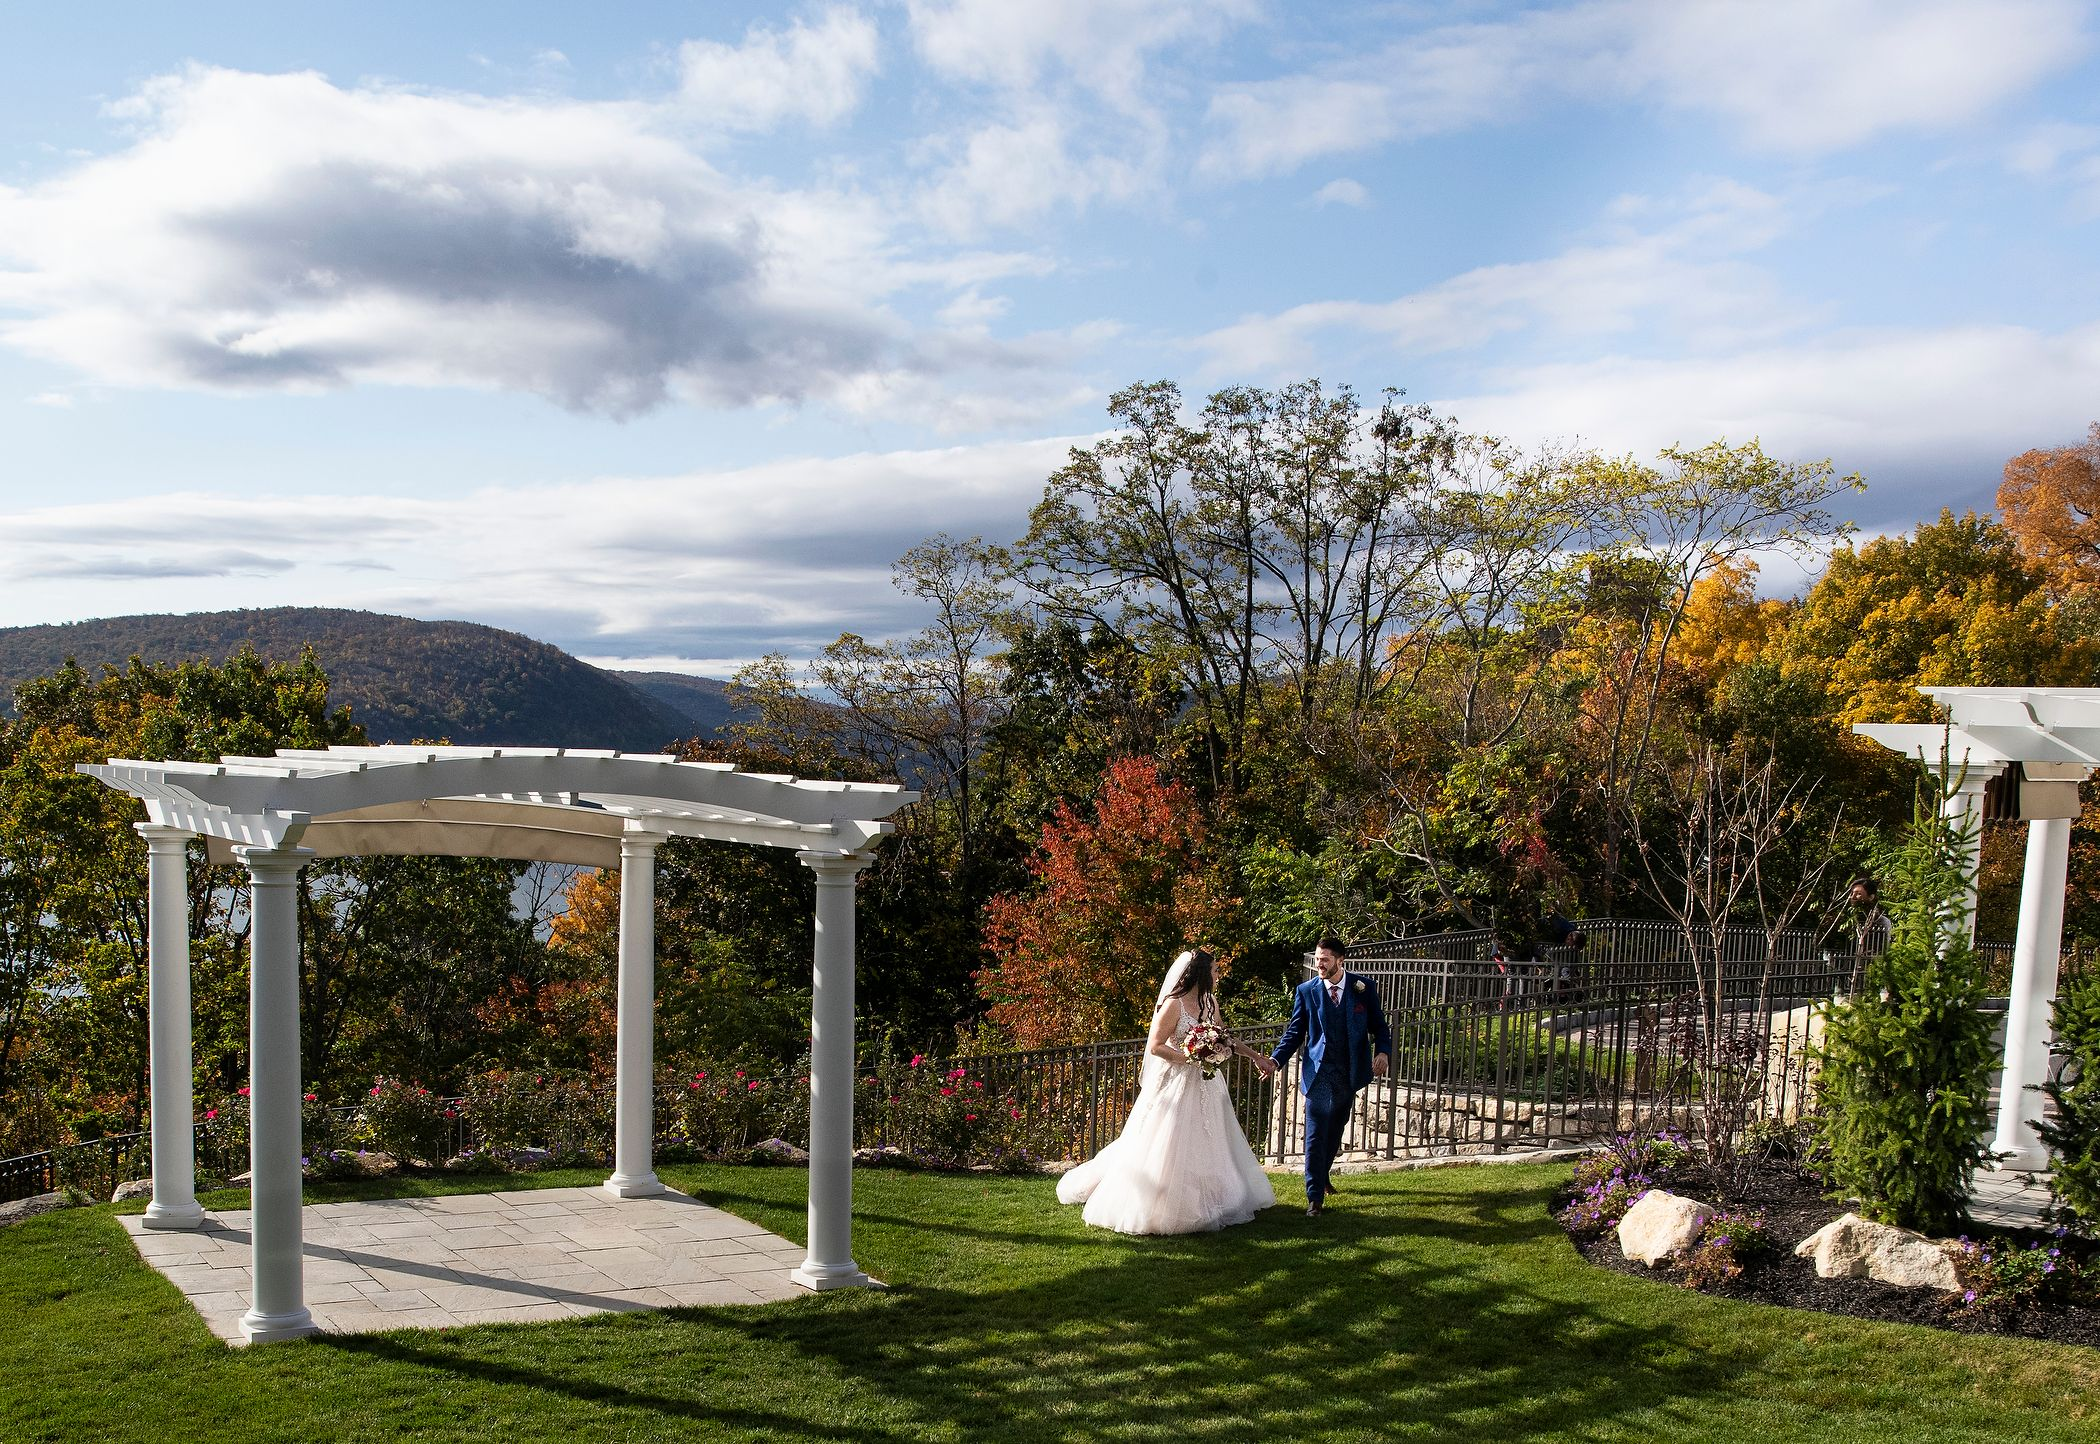 A Glorious Autum Hudson Valley Mini-Wedding